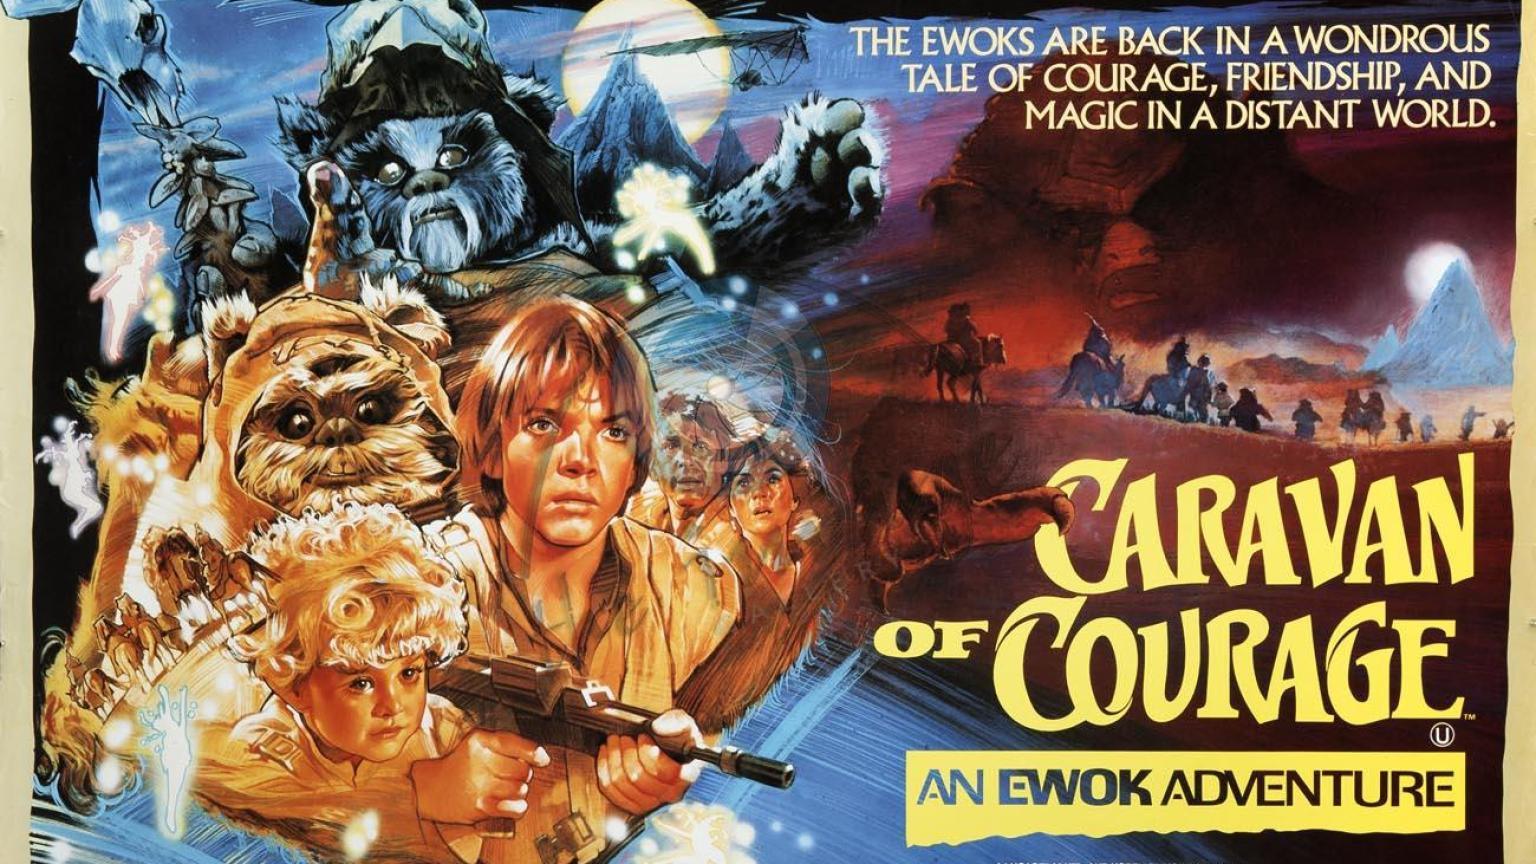 Caravan of Courage An Ewok Adventure